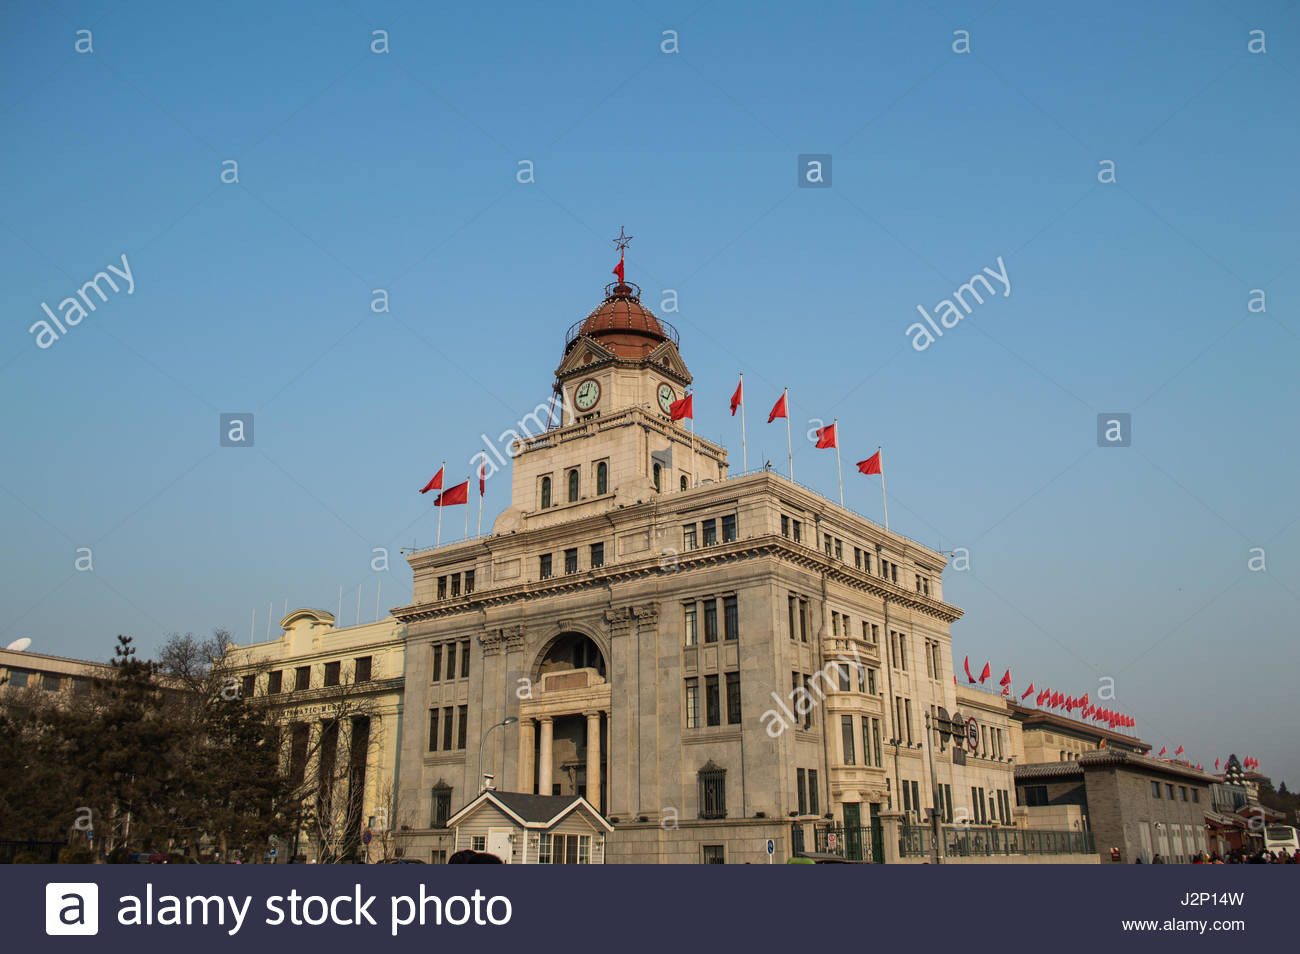 Yuling Beijing, Beijing China Museum Stock Photos & Beijing China Museum Stock ...